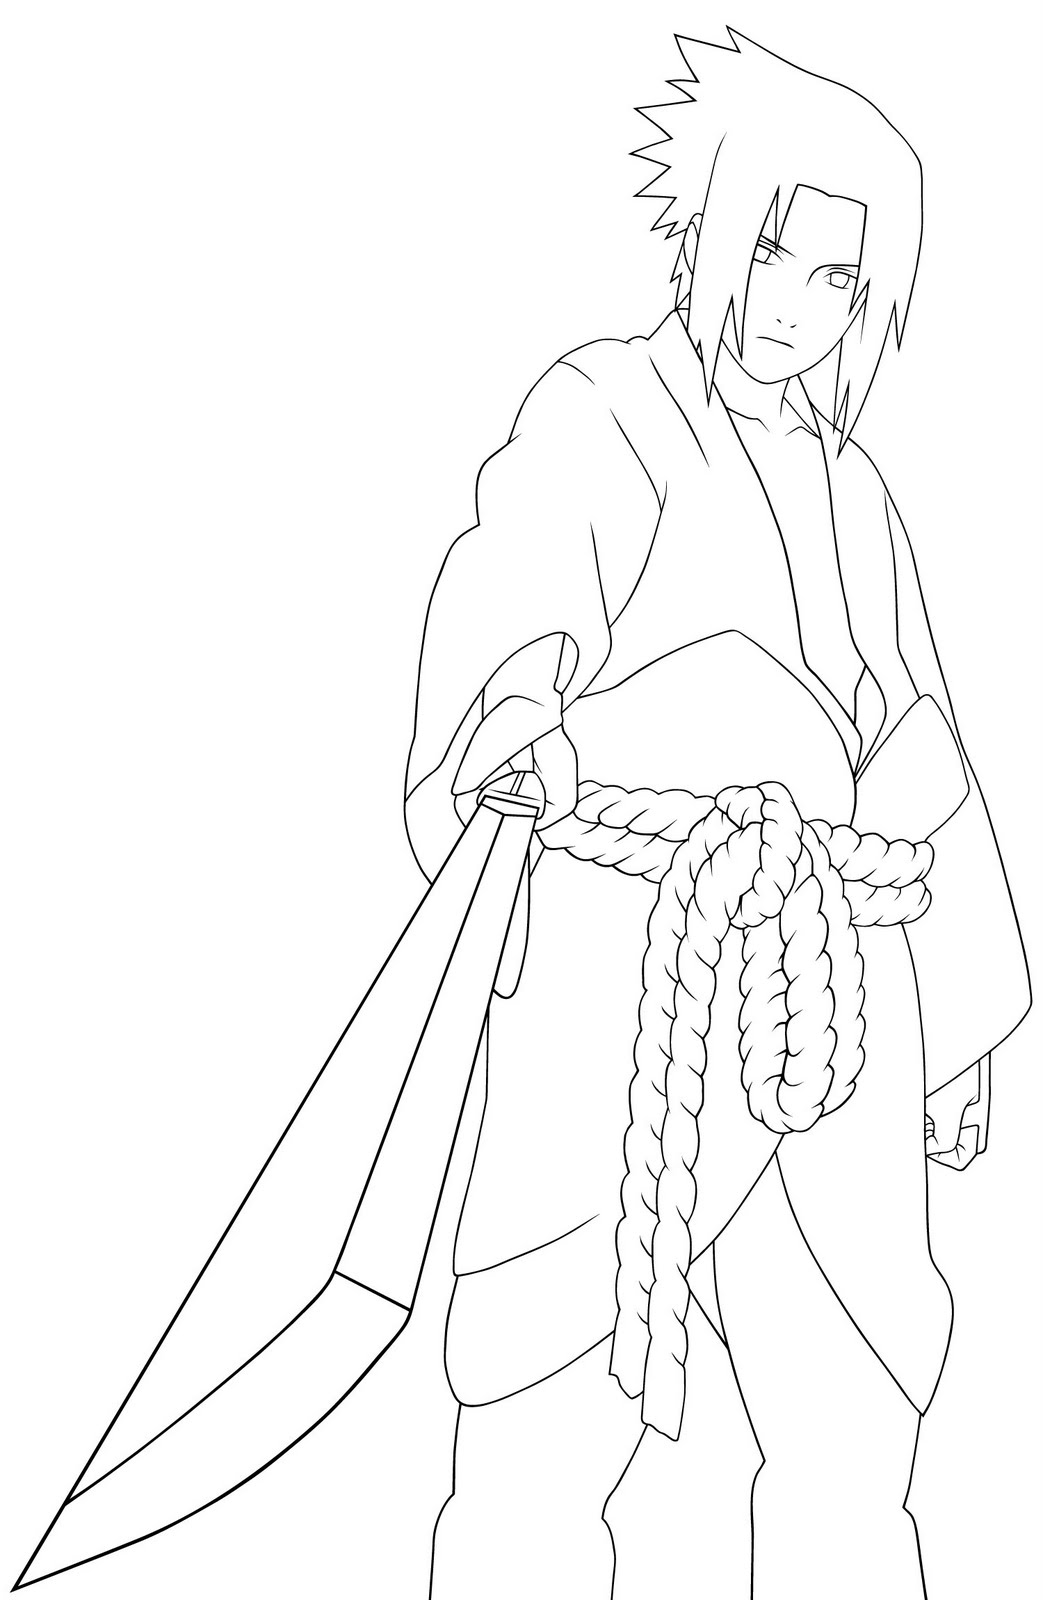 coloring pages anime no color 274 best images about lineart sword art online on pinterest no anime coloring pages color